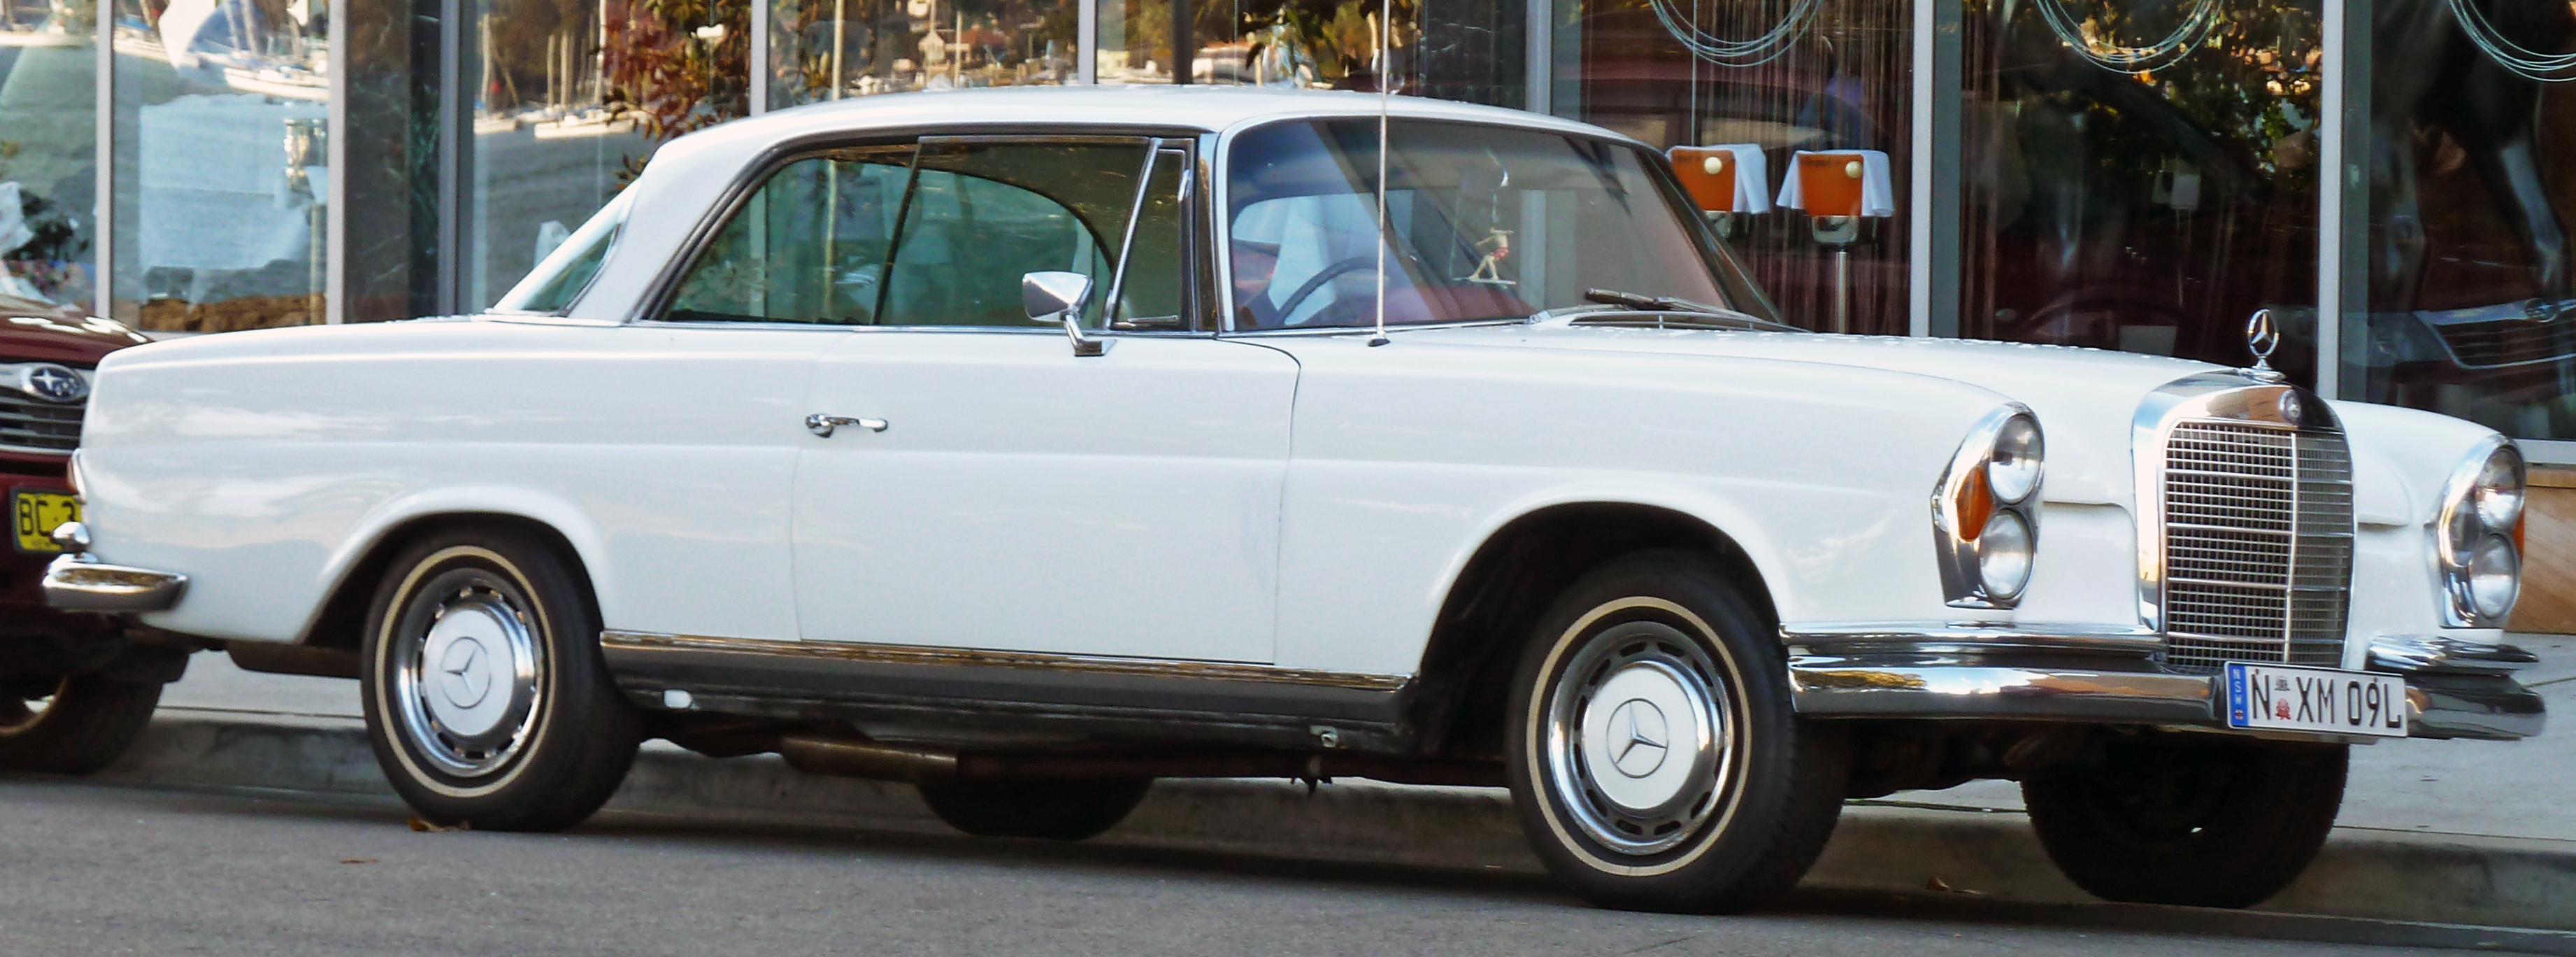 File:1968-1971 Mercedes-Benz 280 SE (W111) coupe 01.